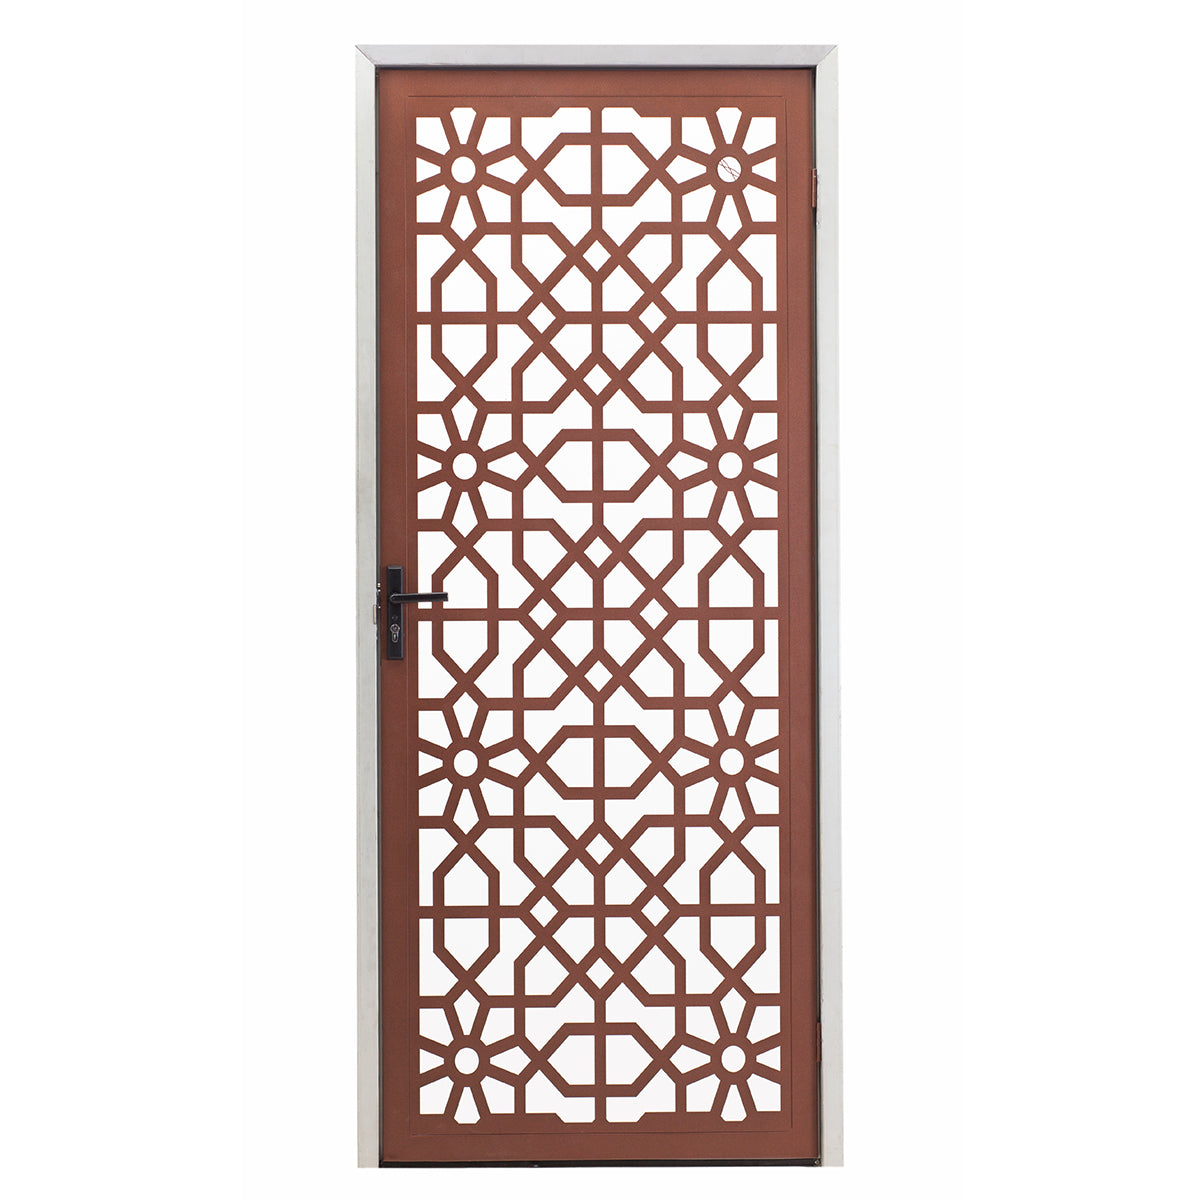 Moorish Original Screen Door